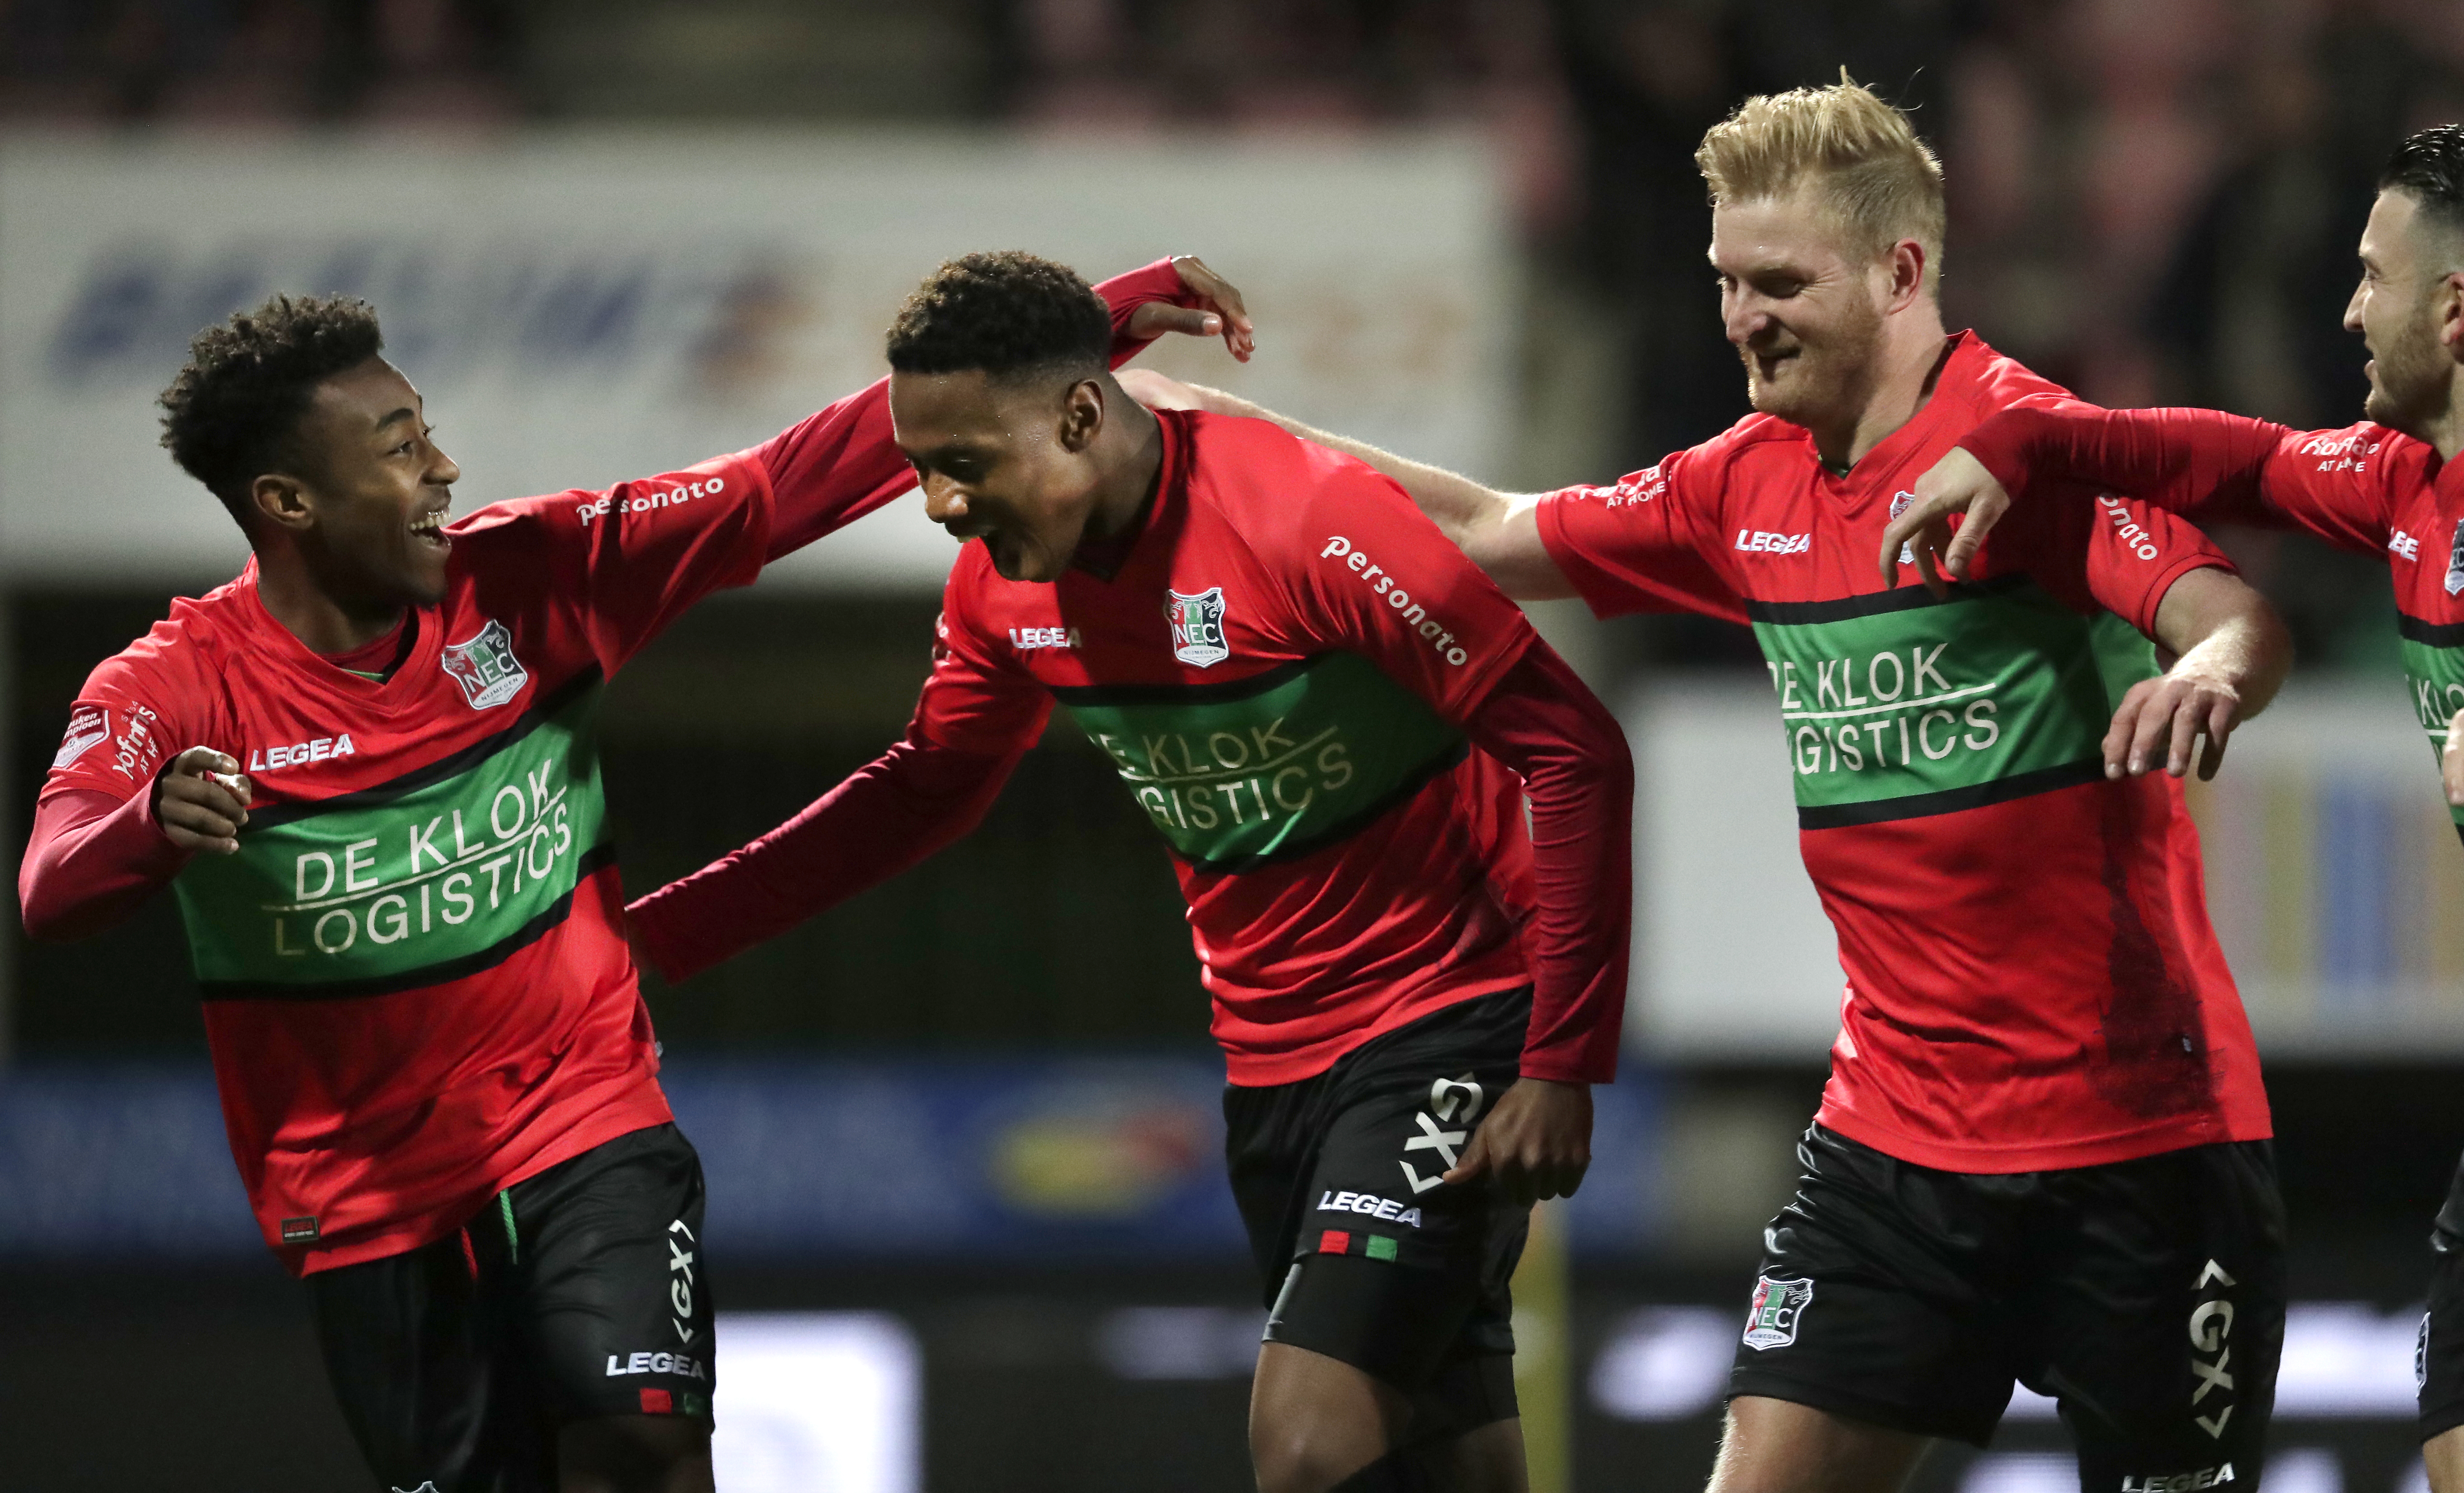 N.E.C. - FC Den Bosch in de media